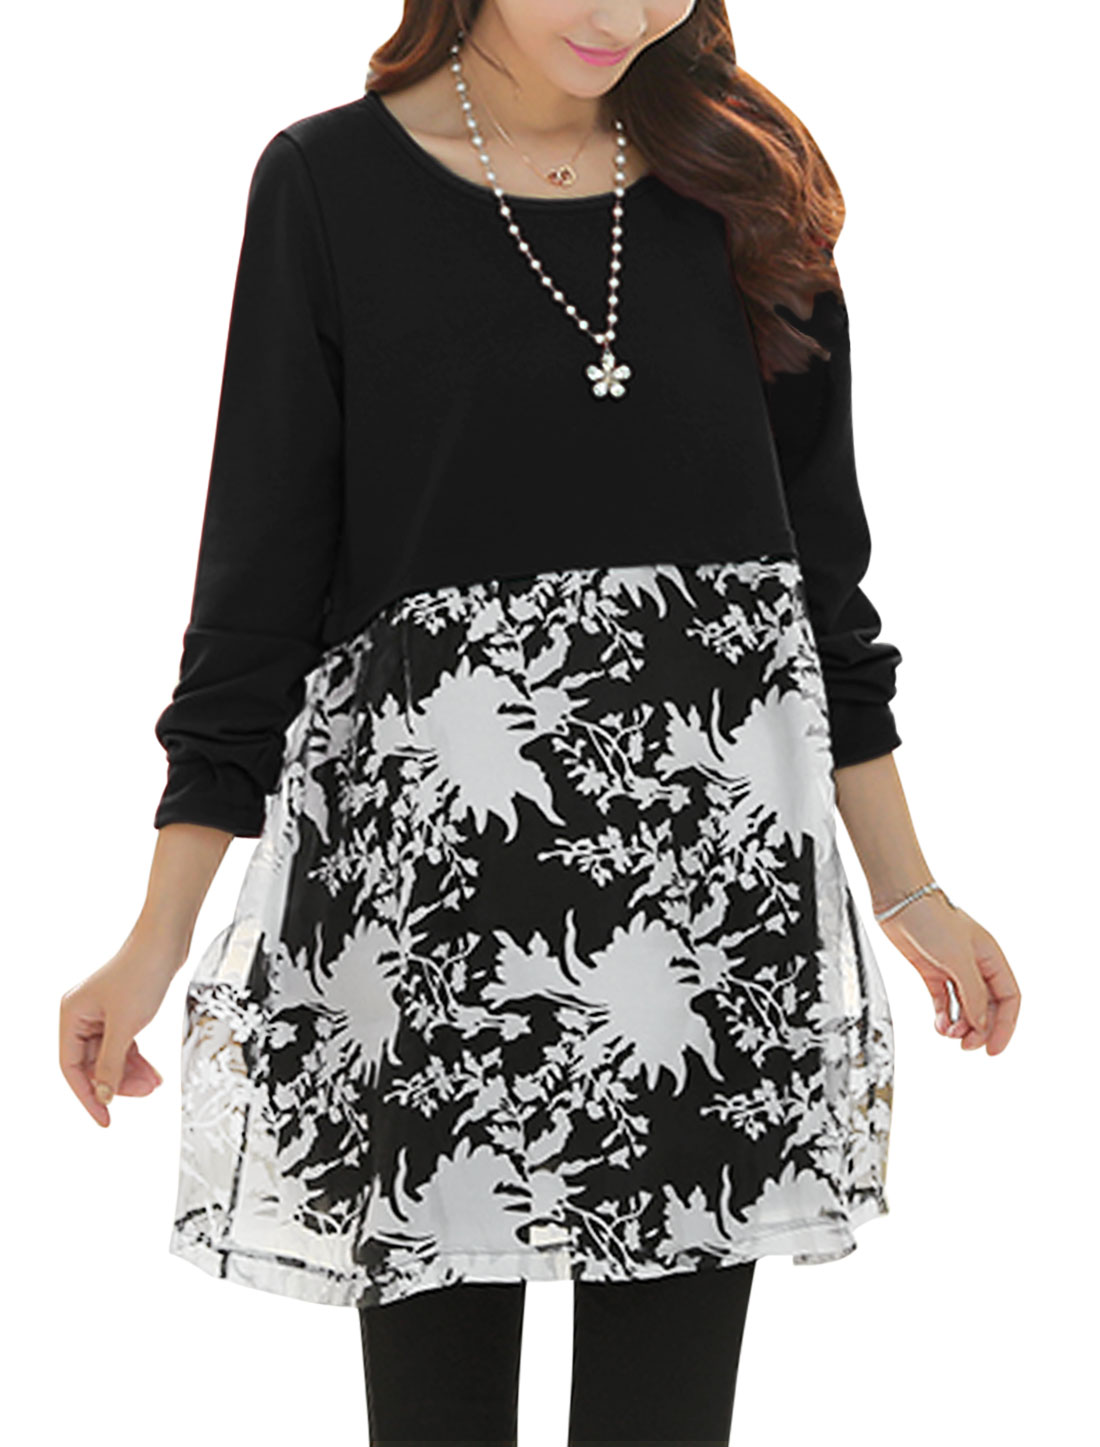 Maternity Round Neck Floral Pattern Pullover Black Dress L